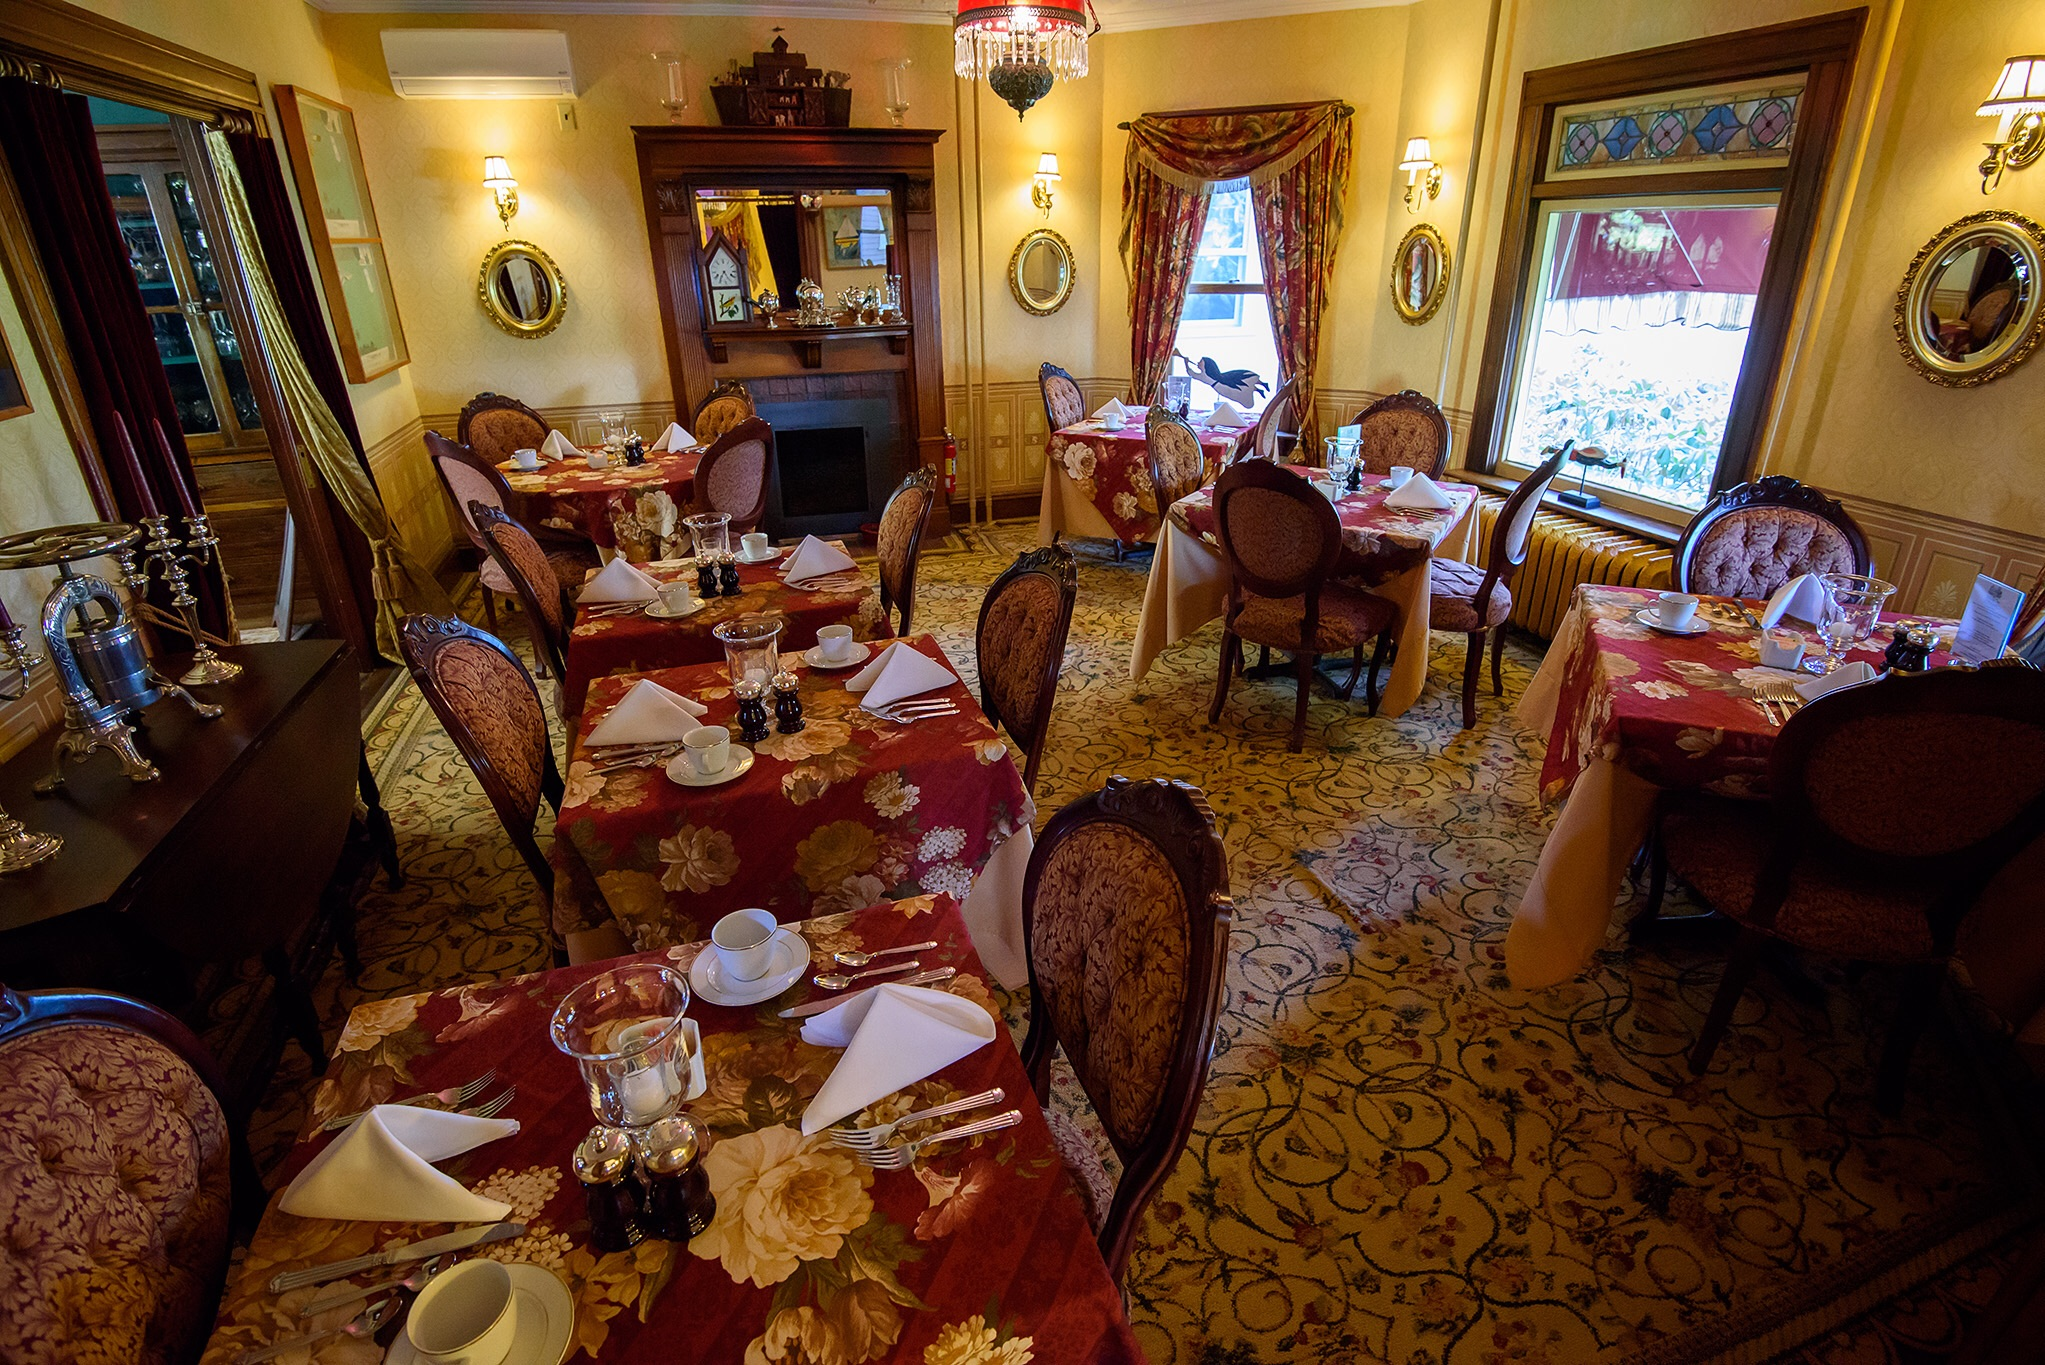 The Victorian style dining room at the Village Inn